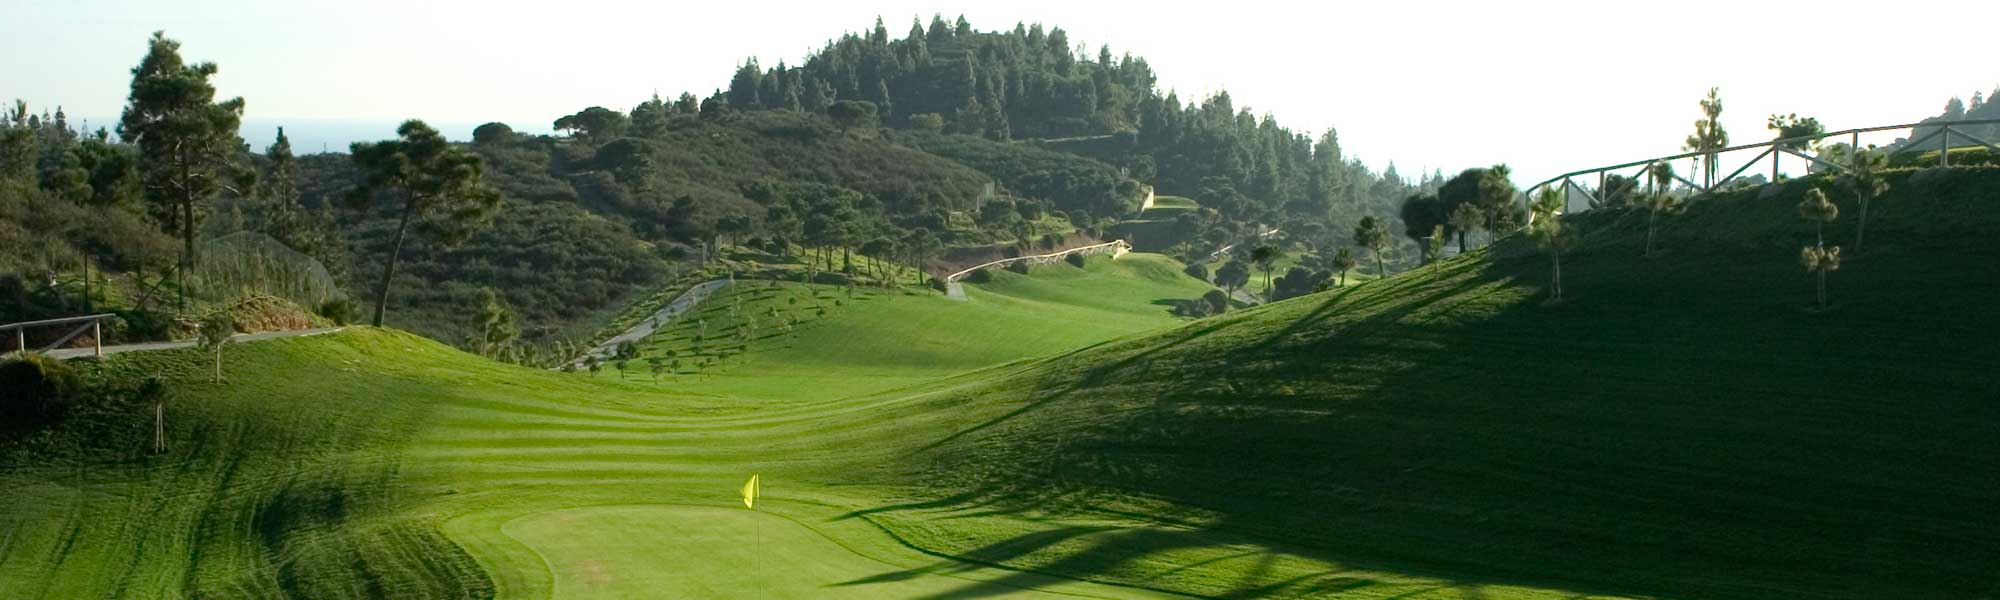 Benalmadena Golf Courses